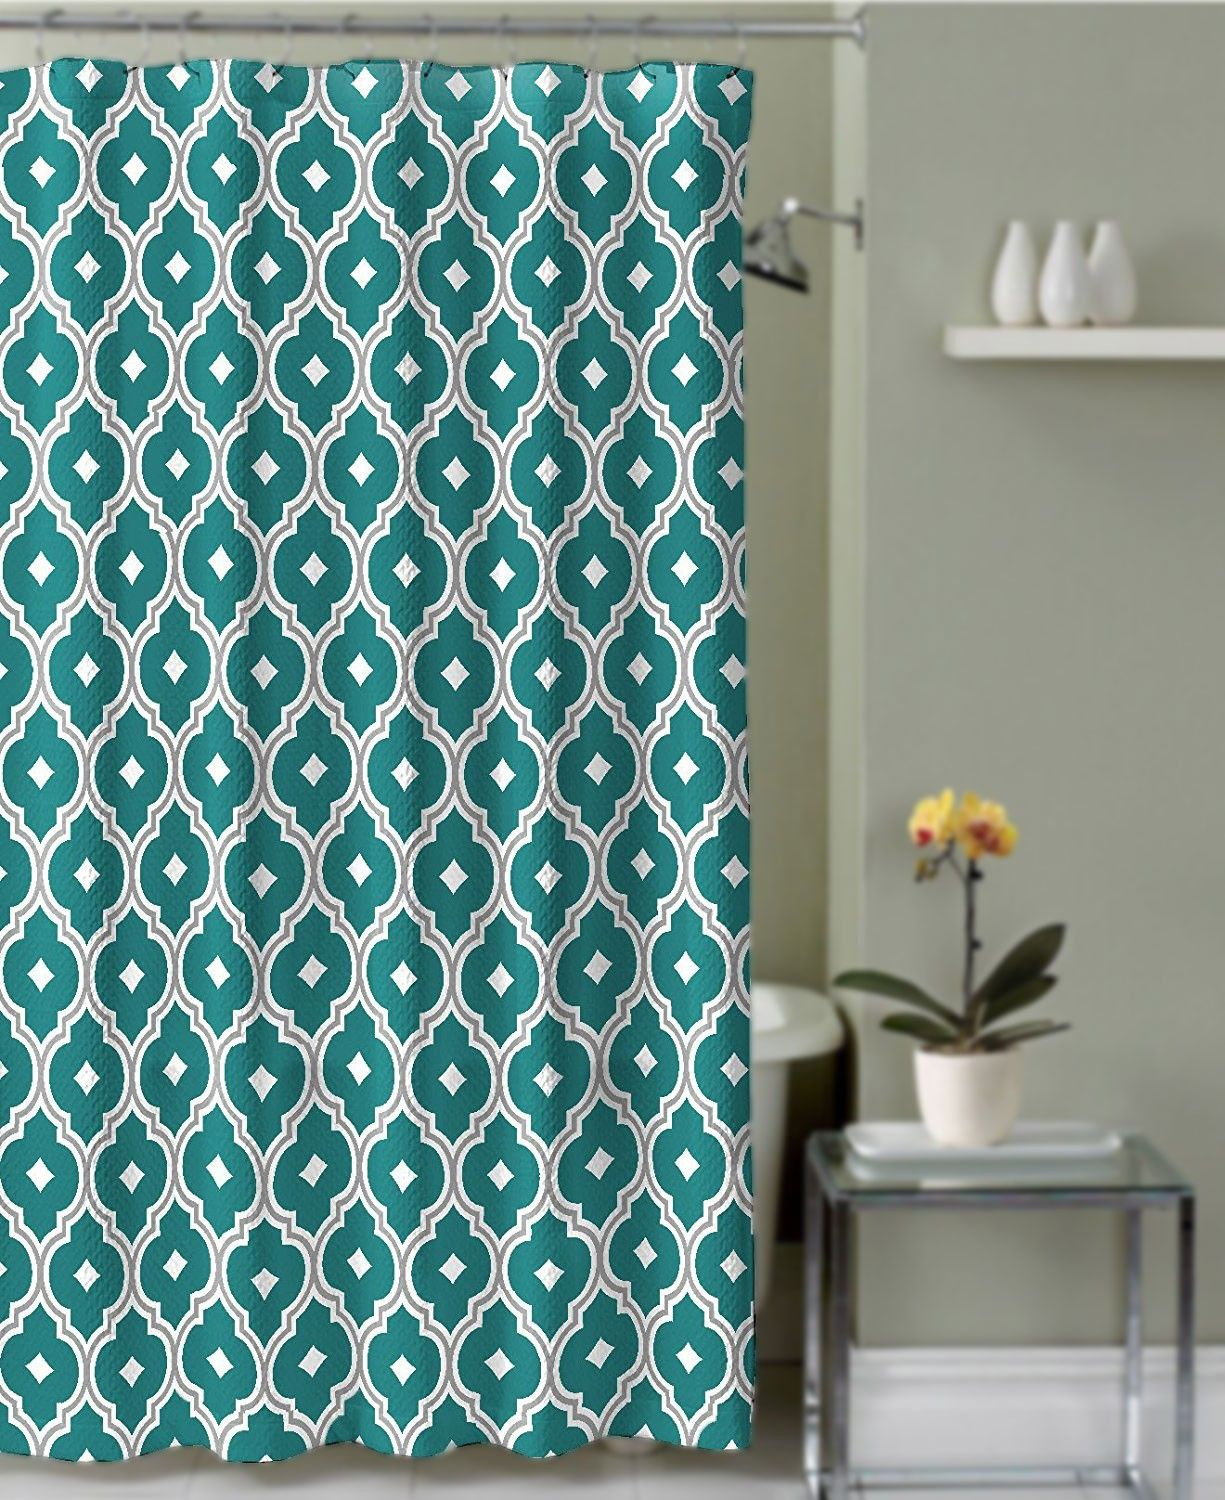 Crest Home Renard Fabric Shower Curtain Teal And Grey Quatrefoil